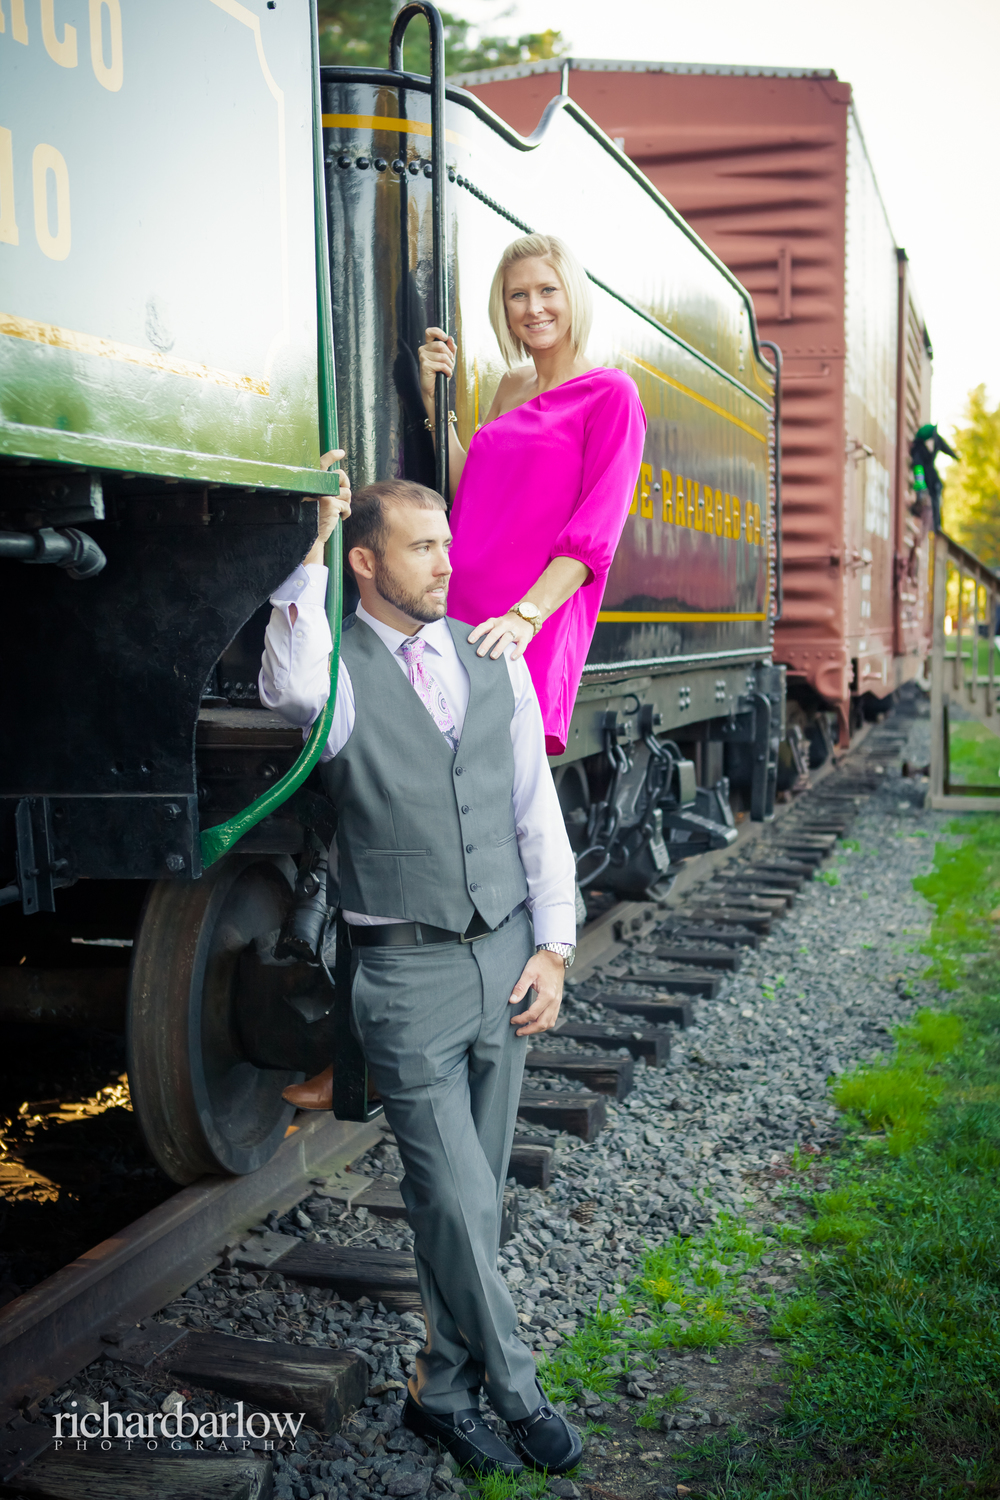 richard barlow photography - Mike and Renee Engagement Session NC-8.jpg